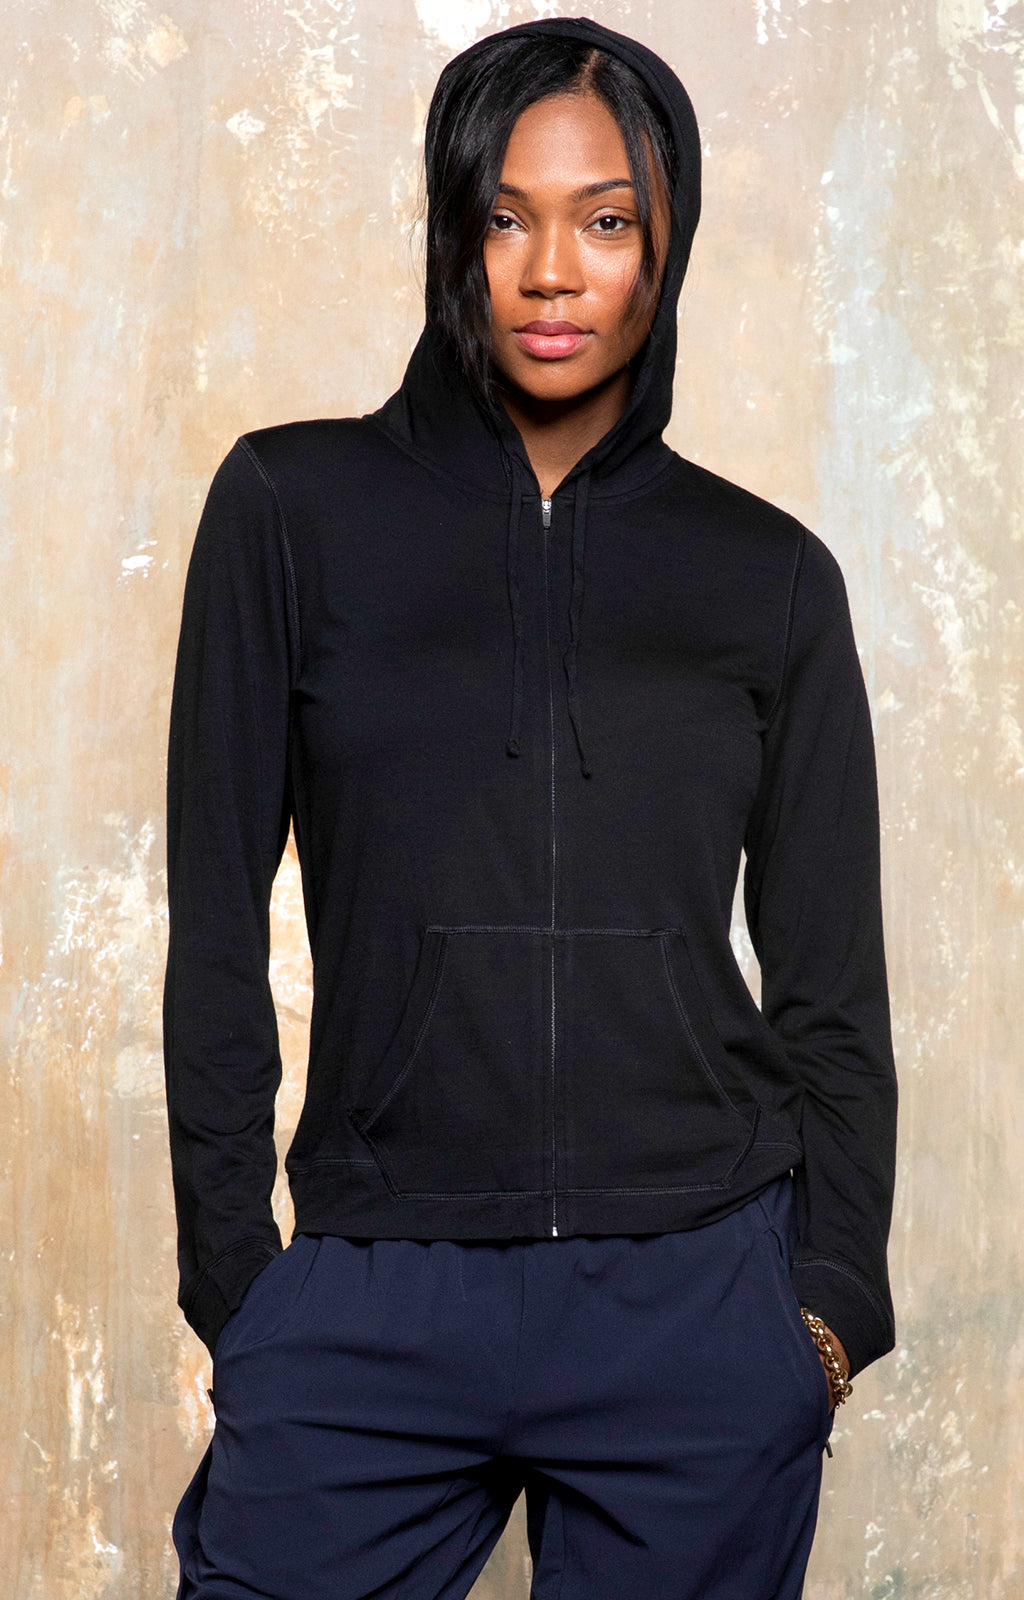 Solitude Hoodie - A Minimalist & Beautiful Updated Staple in Black